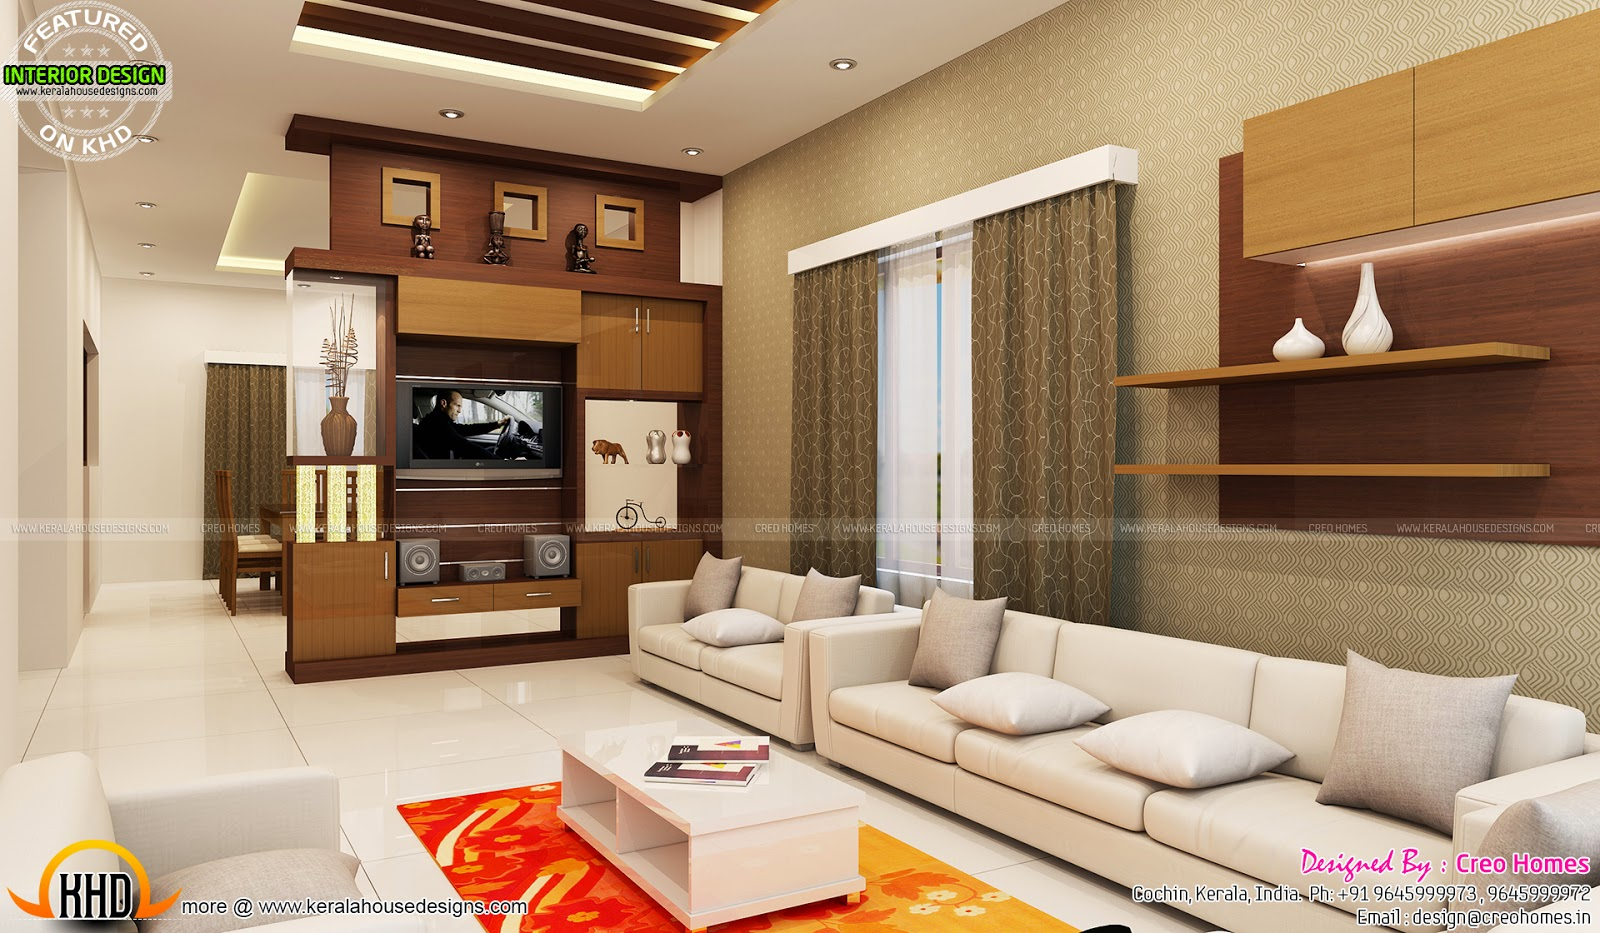 Living, prayer, kitchen interiors - Kerala home design and